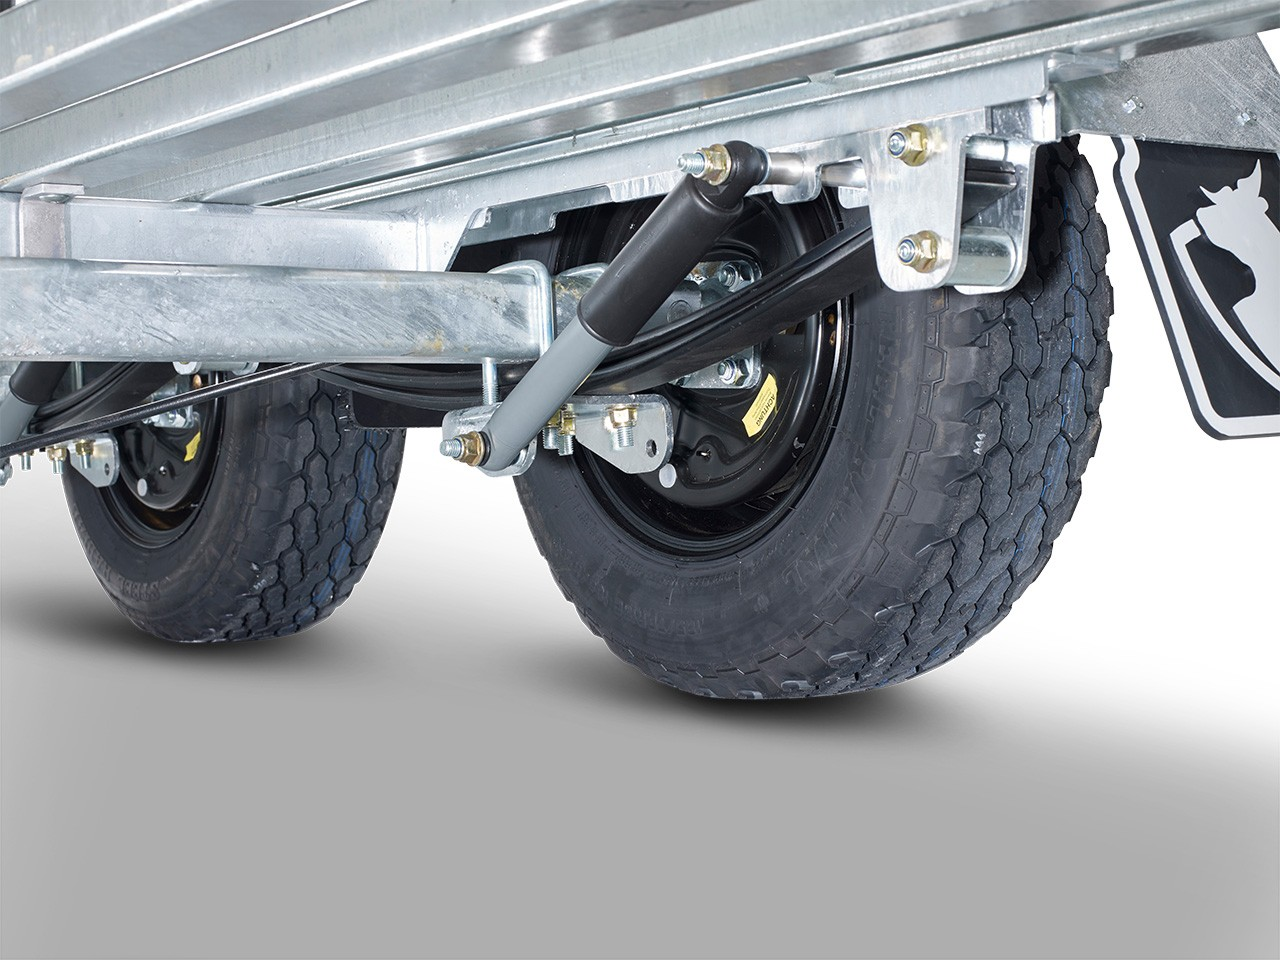 Parabolic suspension with shock absorbers